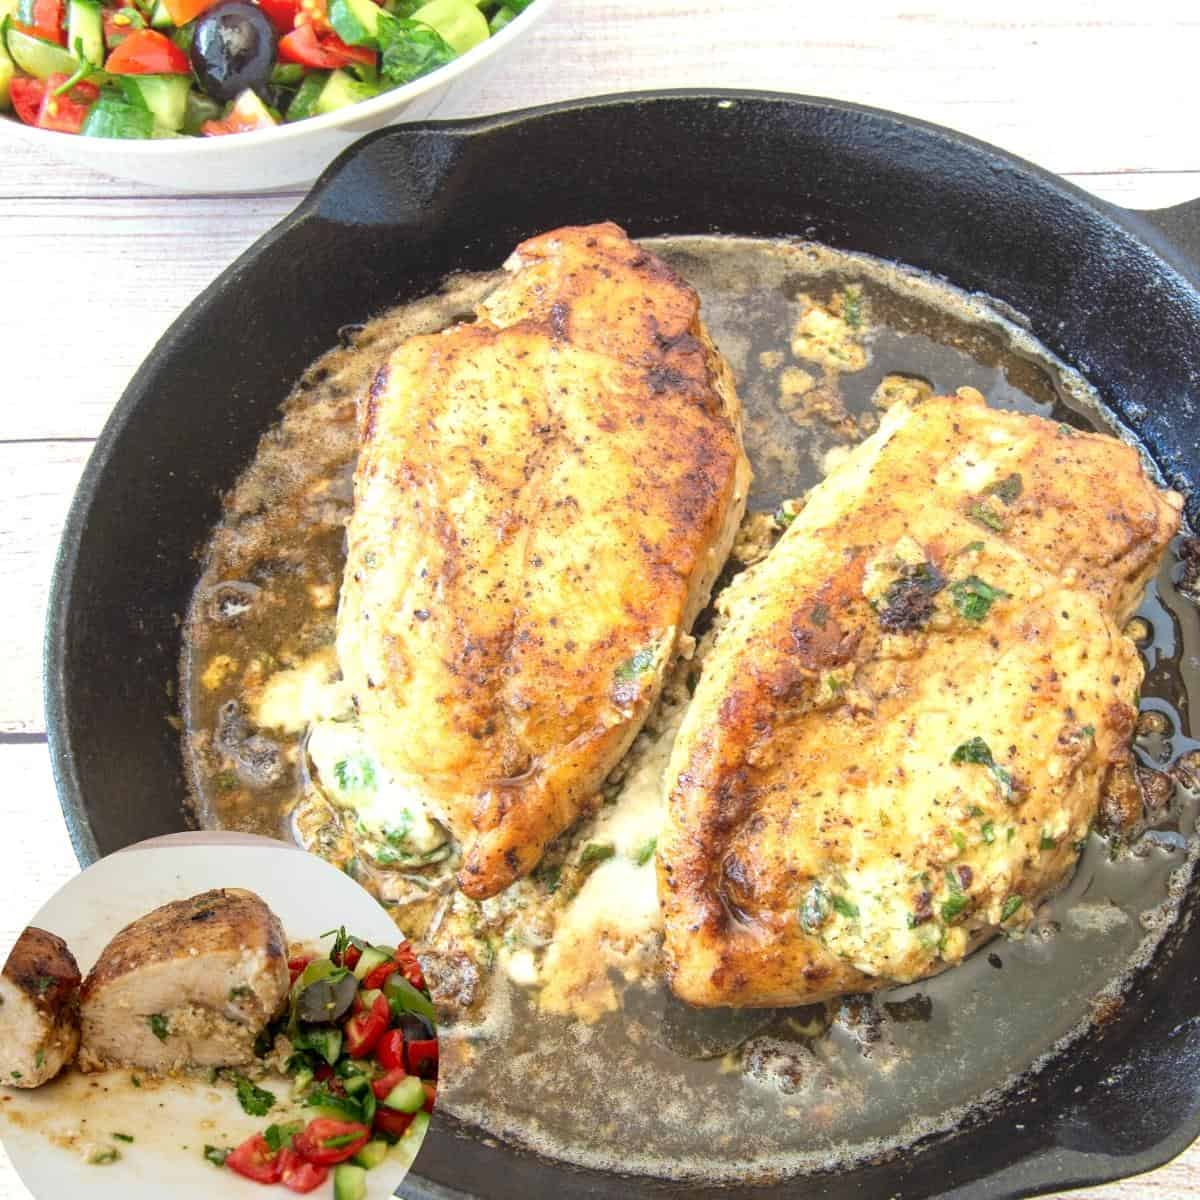 Stuffed chicken breasts in a frying pan.